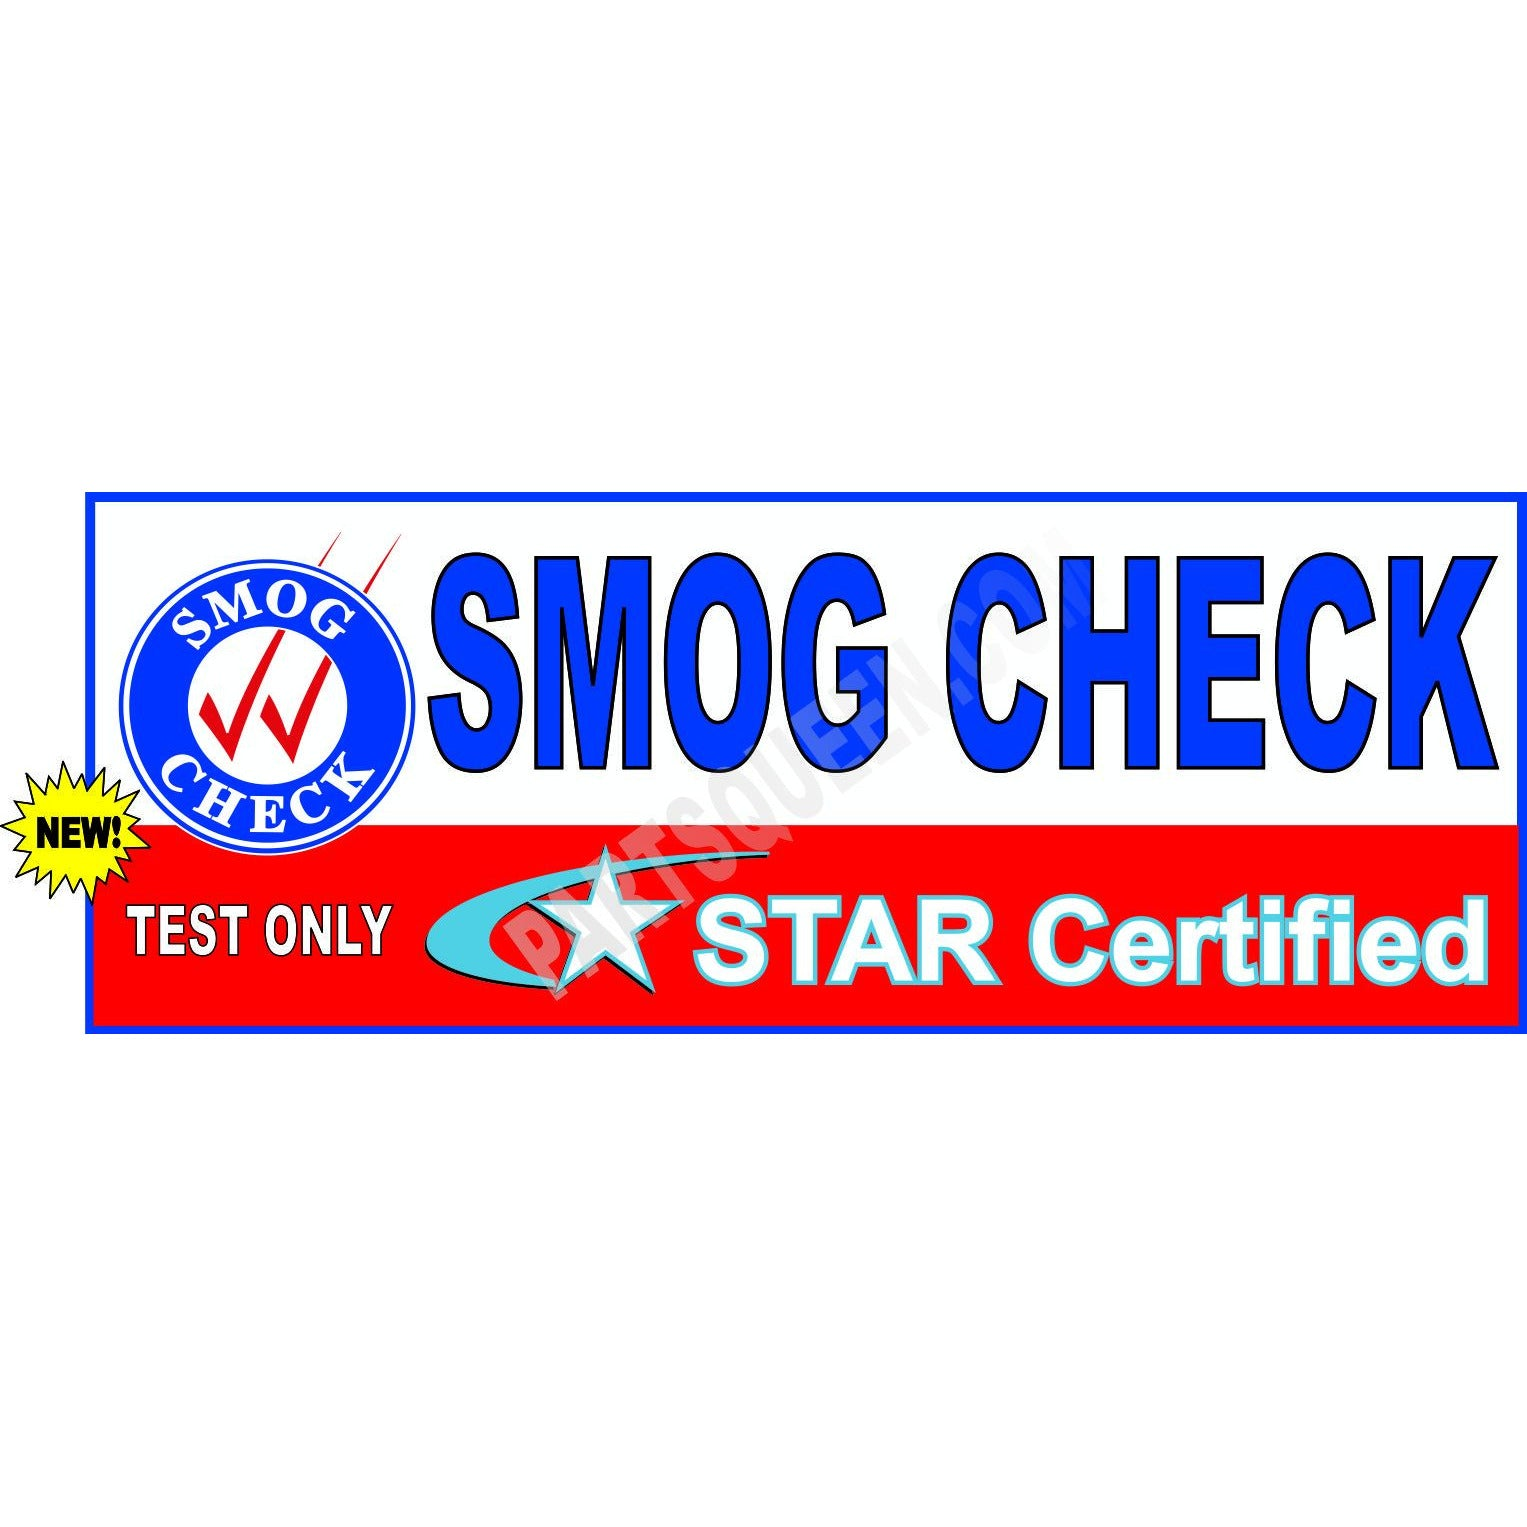 SMOG CHECK STAR CERTIFIED TEST ONLY BANNER / SB-953